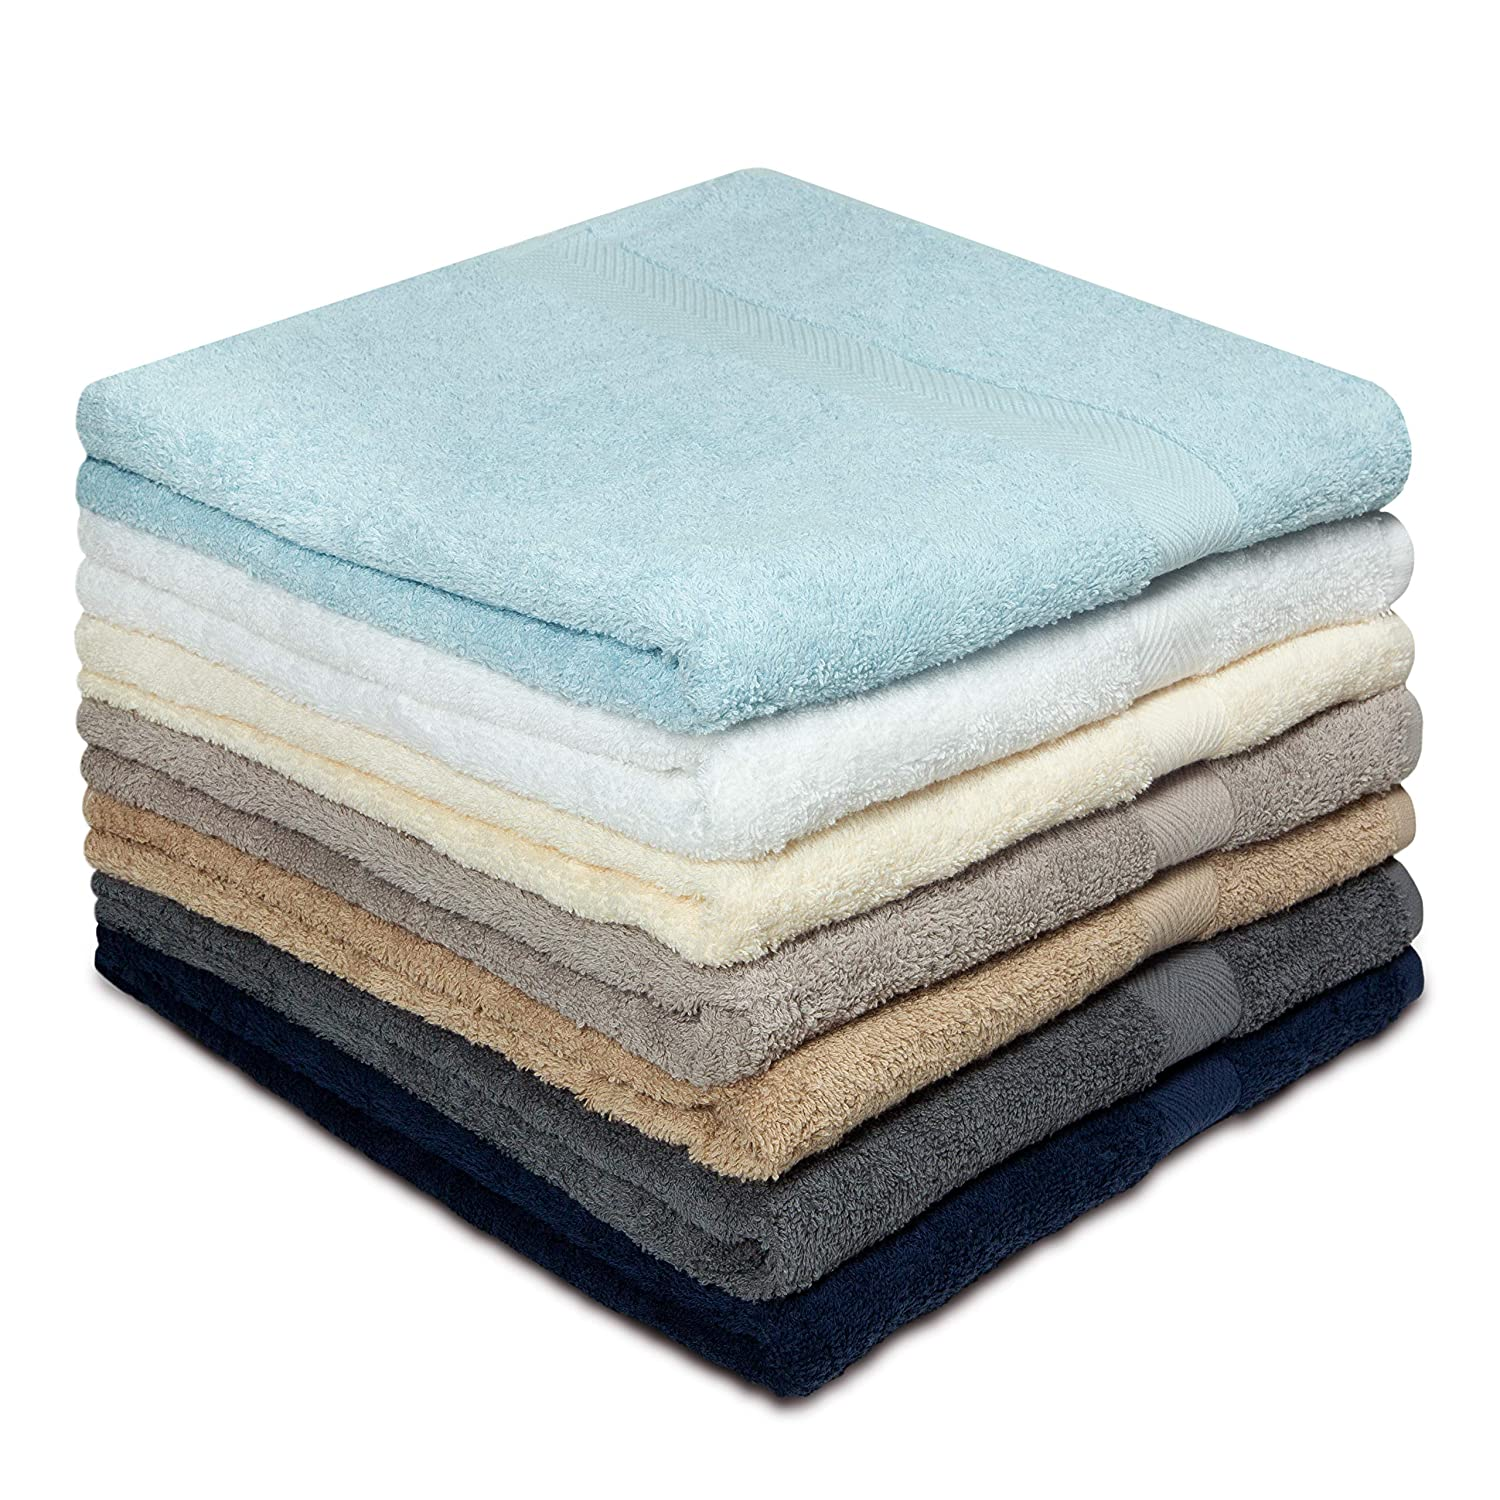 Cotton Craft – Quick Dry Bath Towel Set